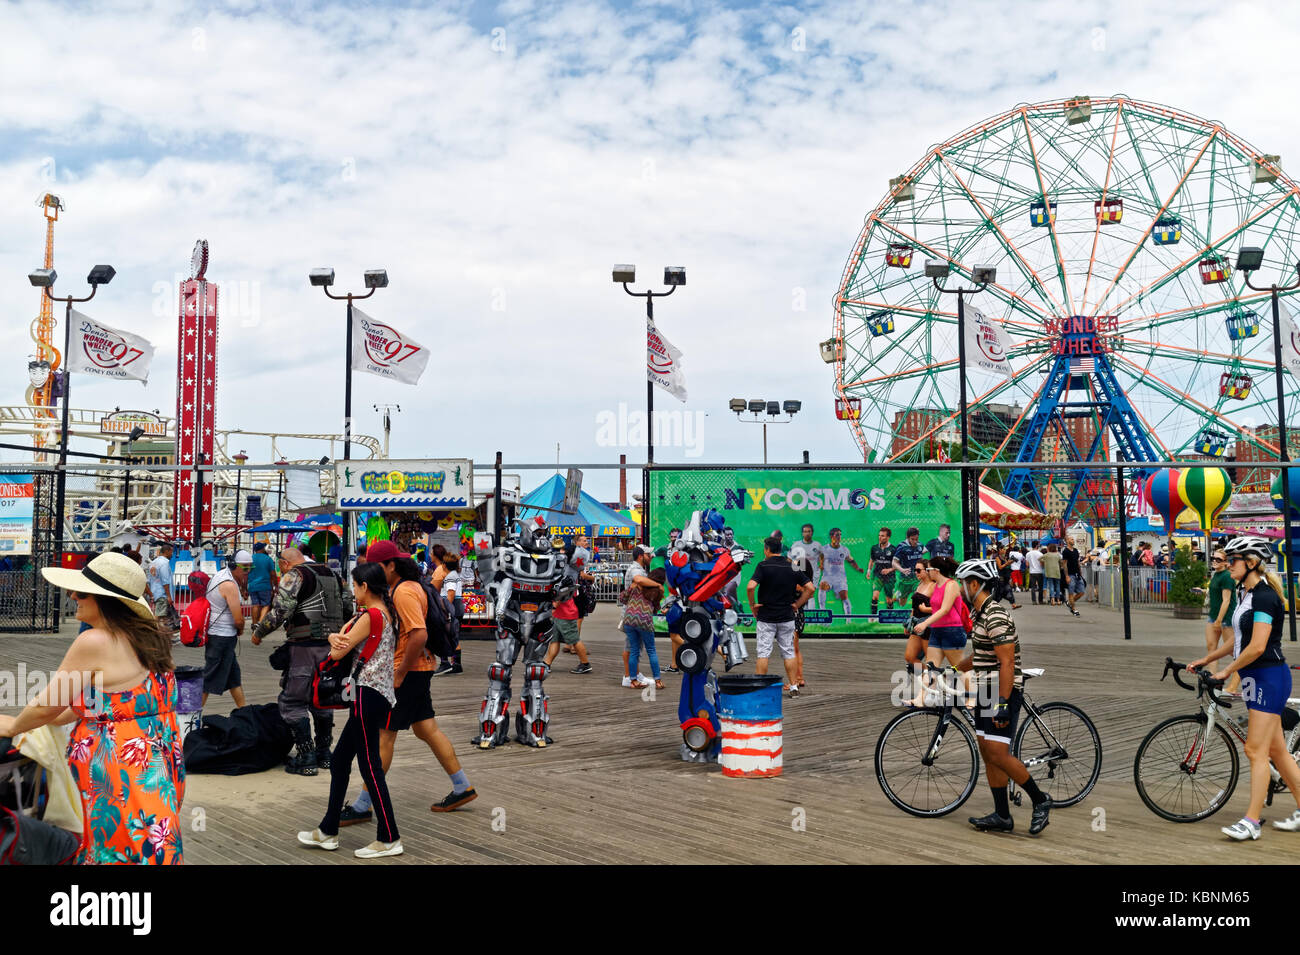 Boardwalk, amusement park featuring the famed Wonder Wheel in Coney Island. - Stock Image